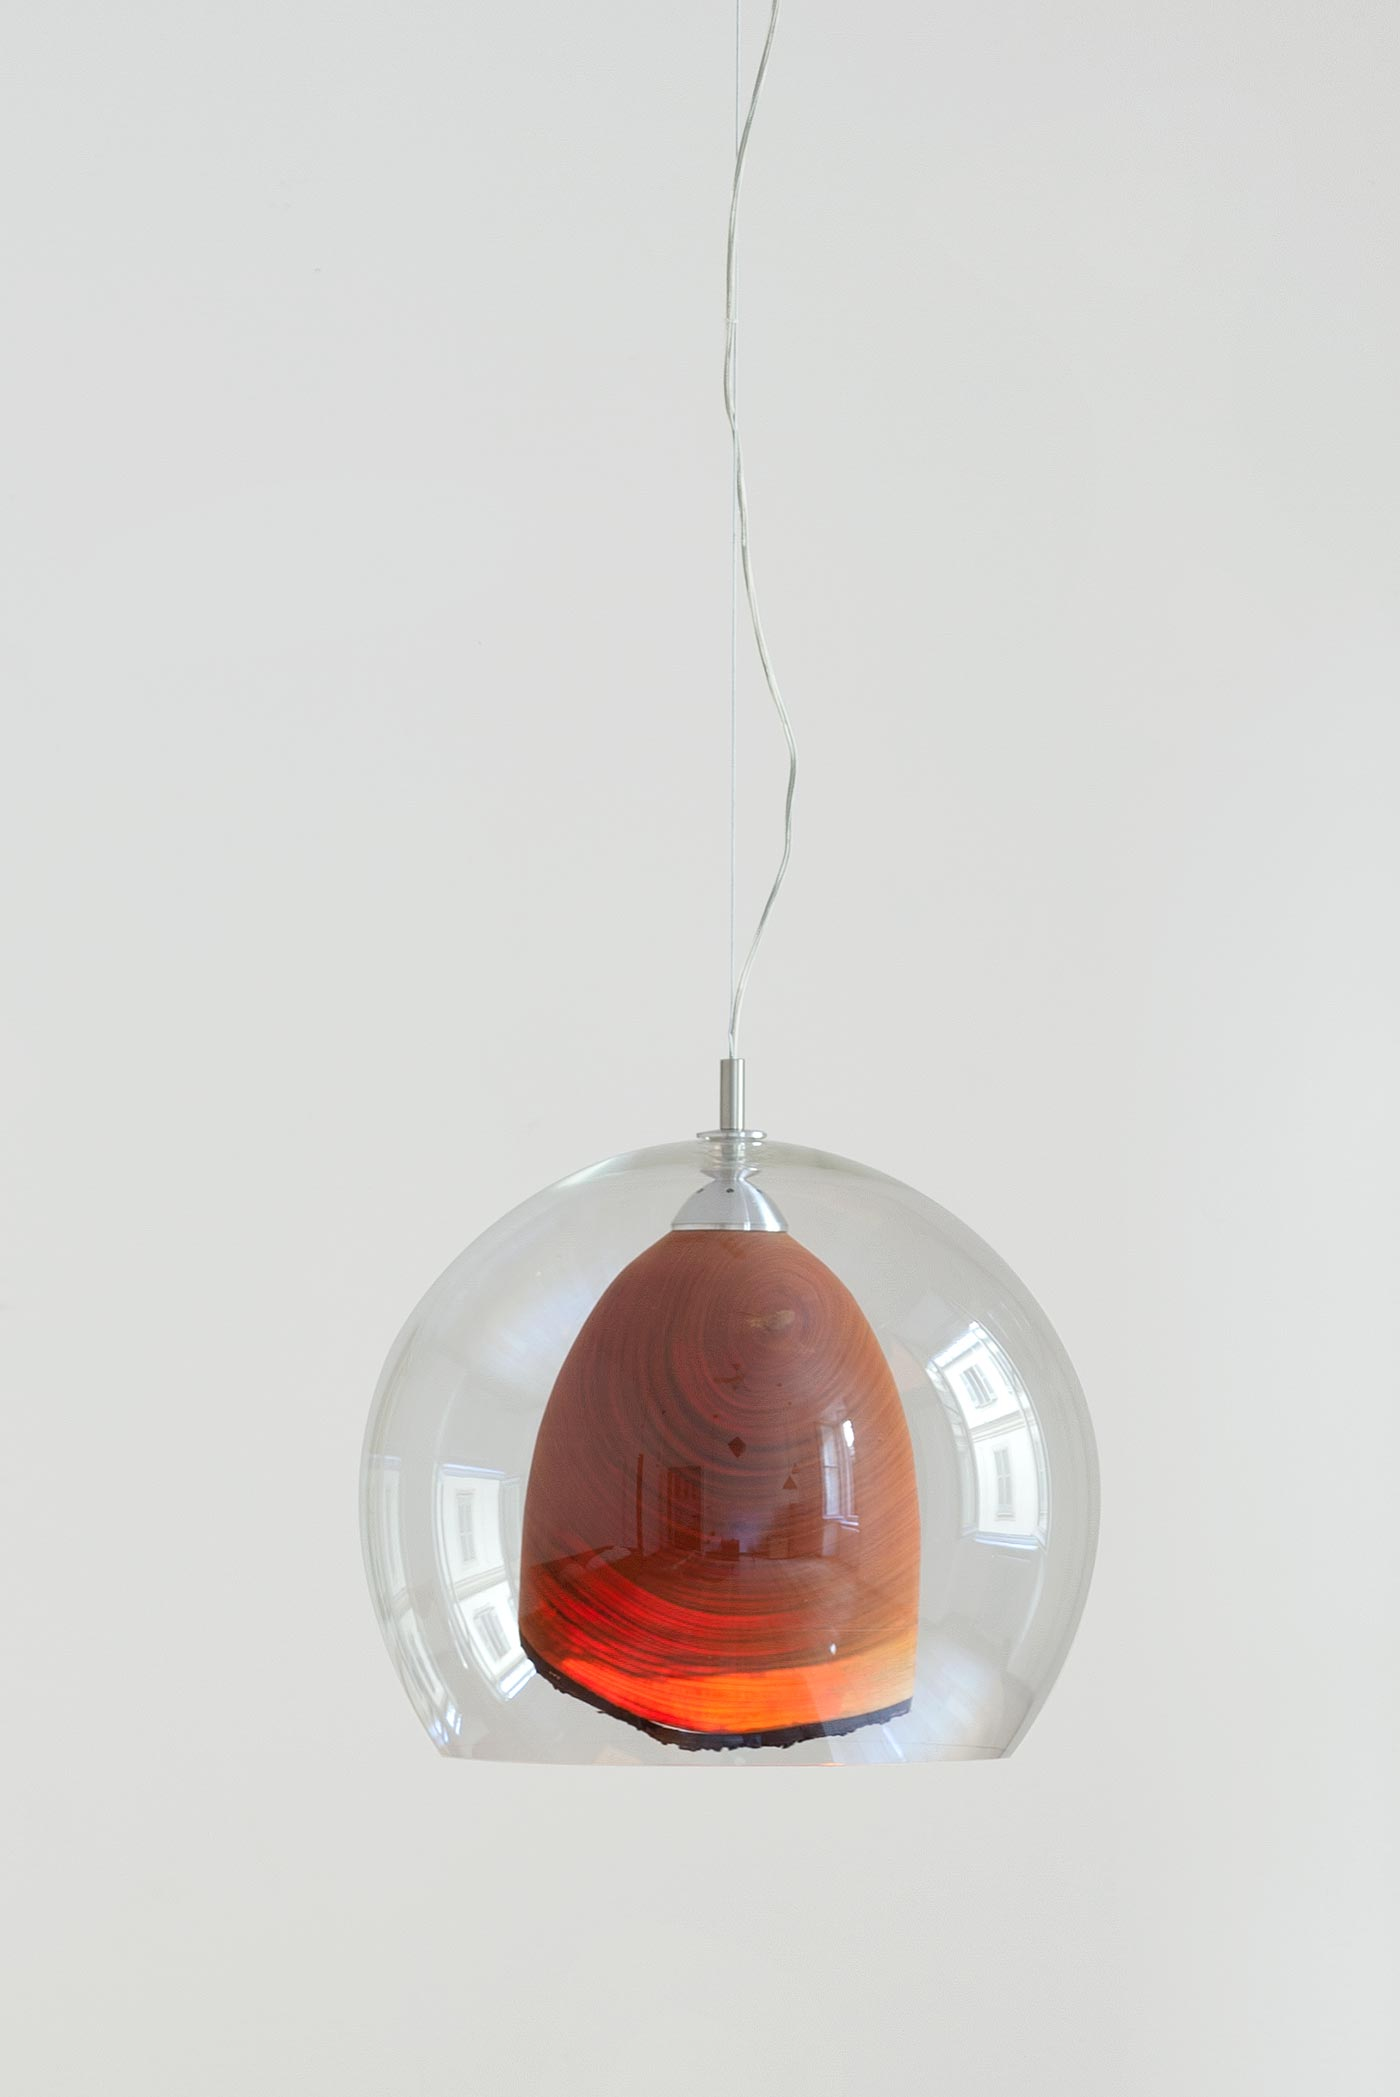 teka-lamp-of-layered-wood-and-glass-2